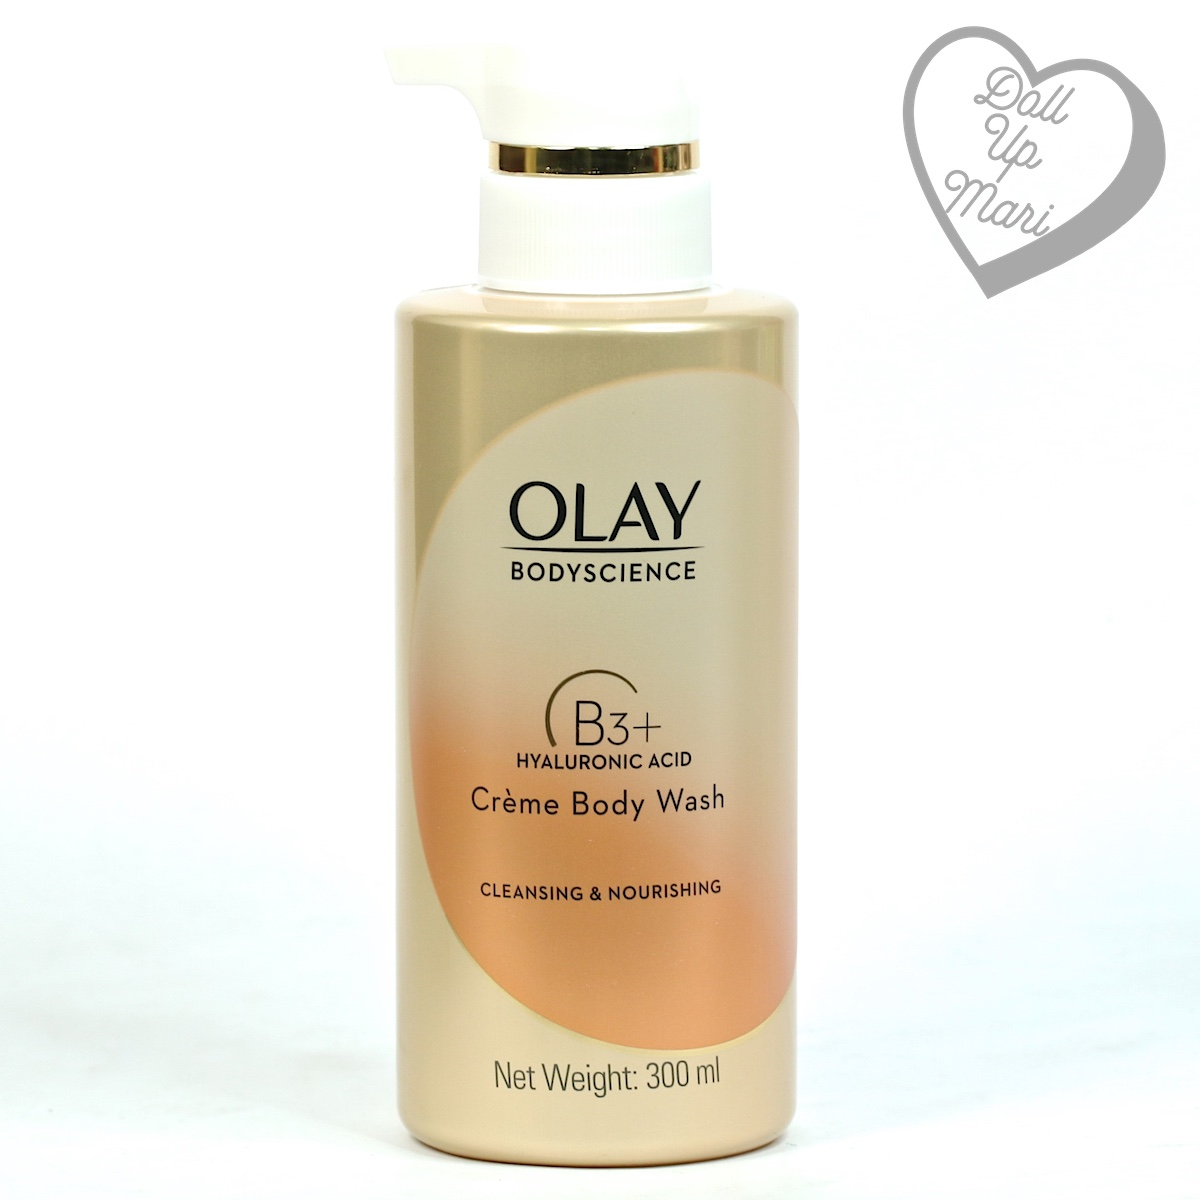 Olay BodyScience Crème Body Wash Cleansing and Nourishing with Hyaluronic Acid Pack shot